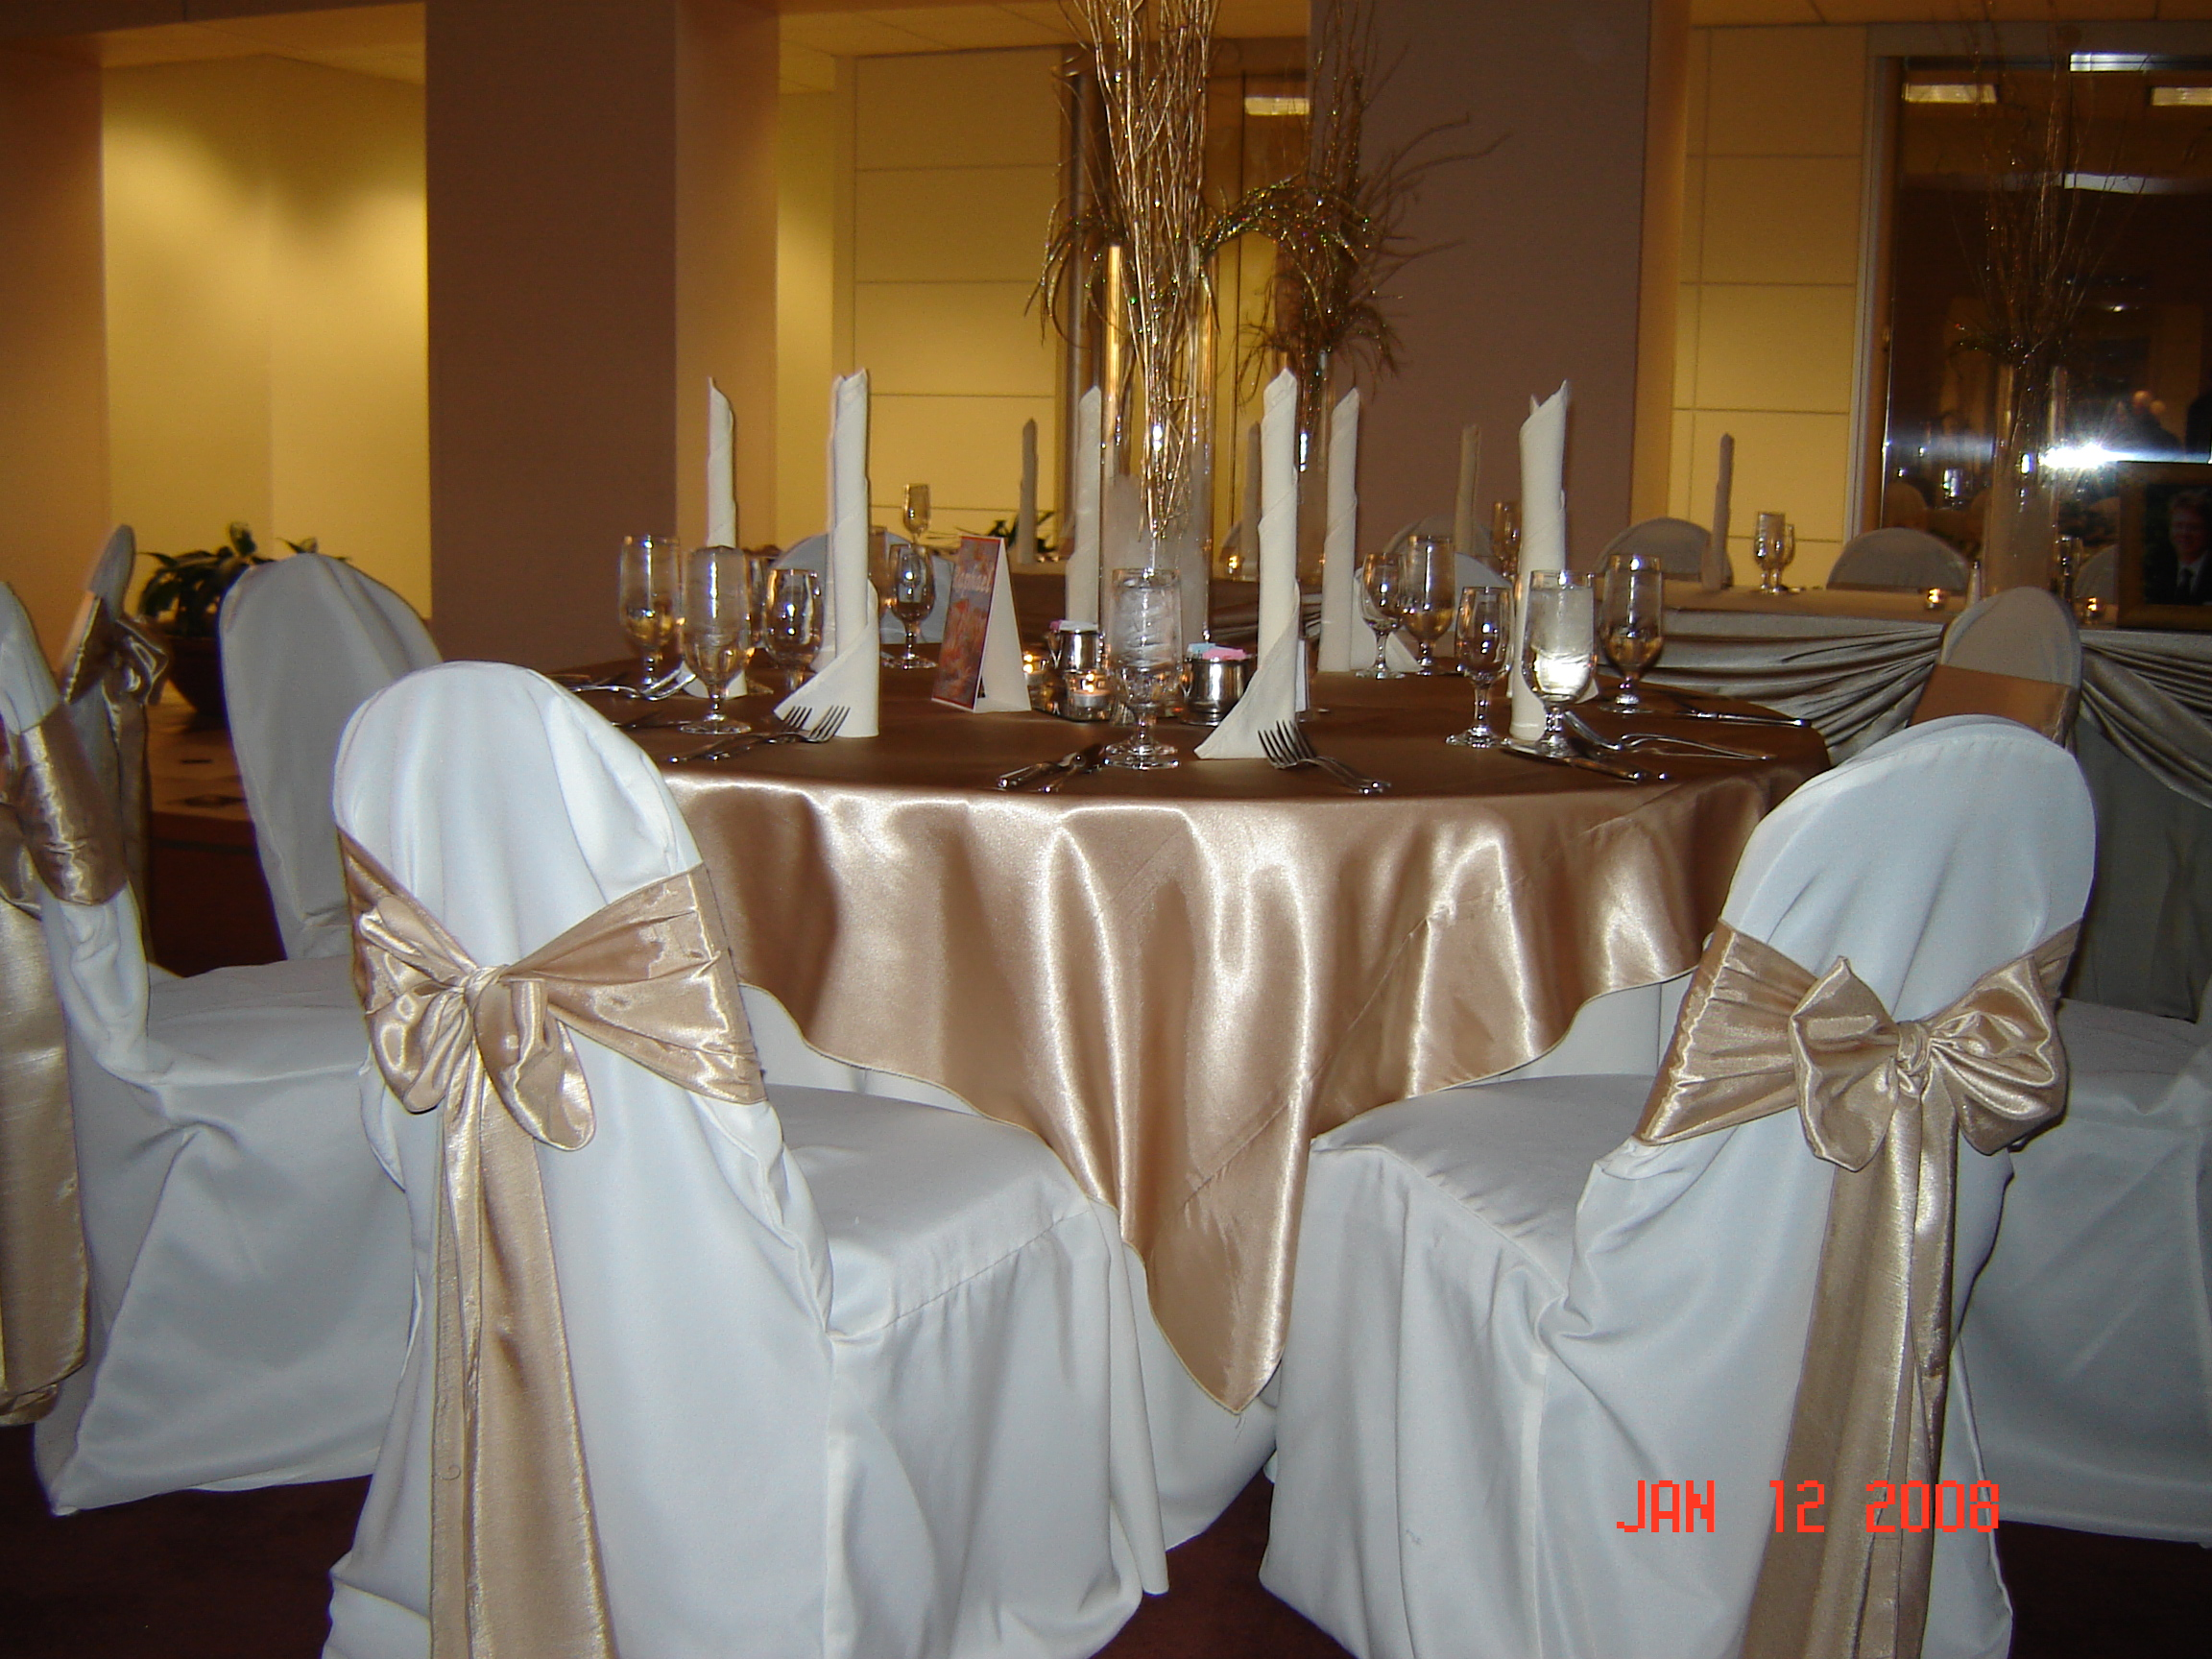 White Chair Covers Simply Elegant Weddings Chair Cover Rentals, wedding rentals, weddings, wedding supplies ...